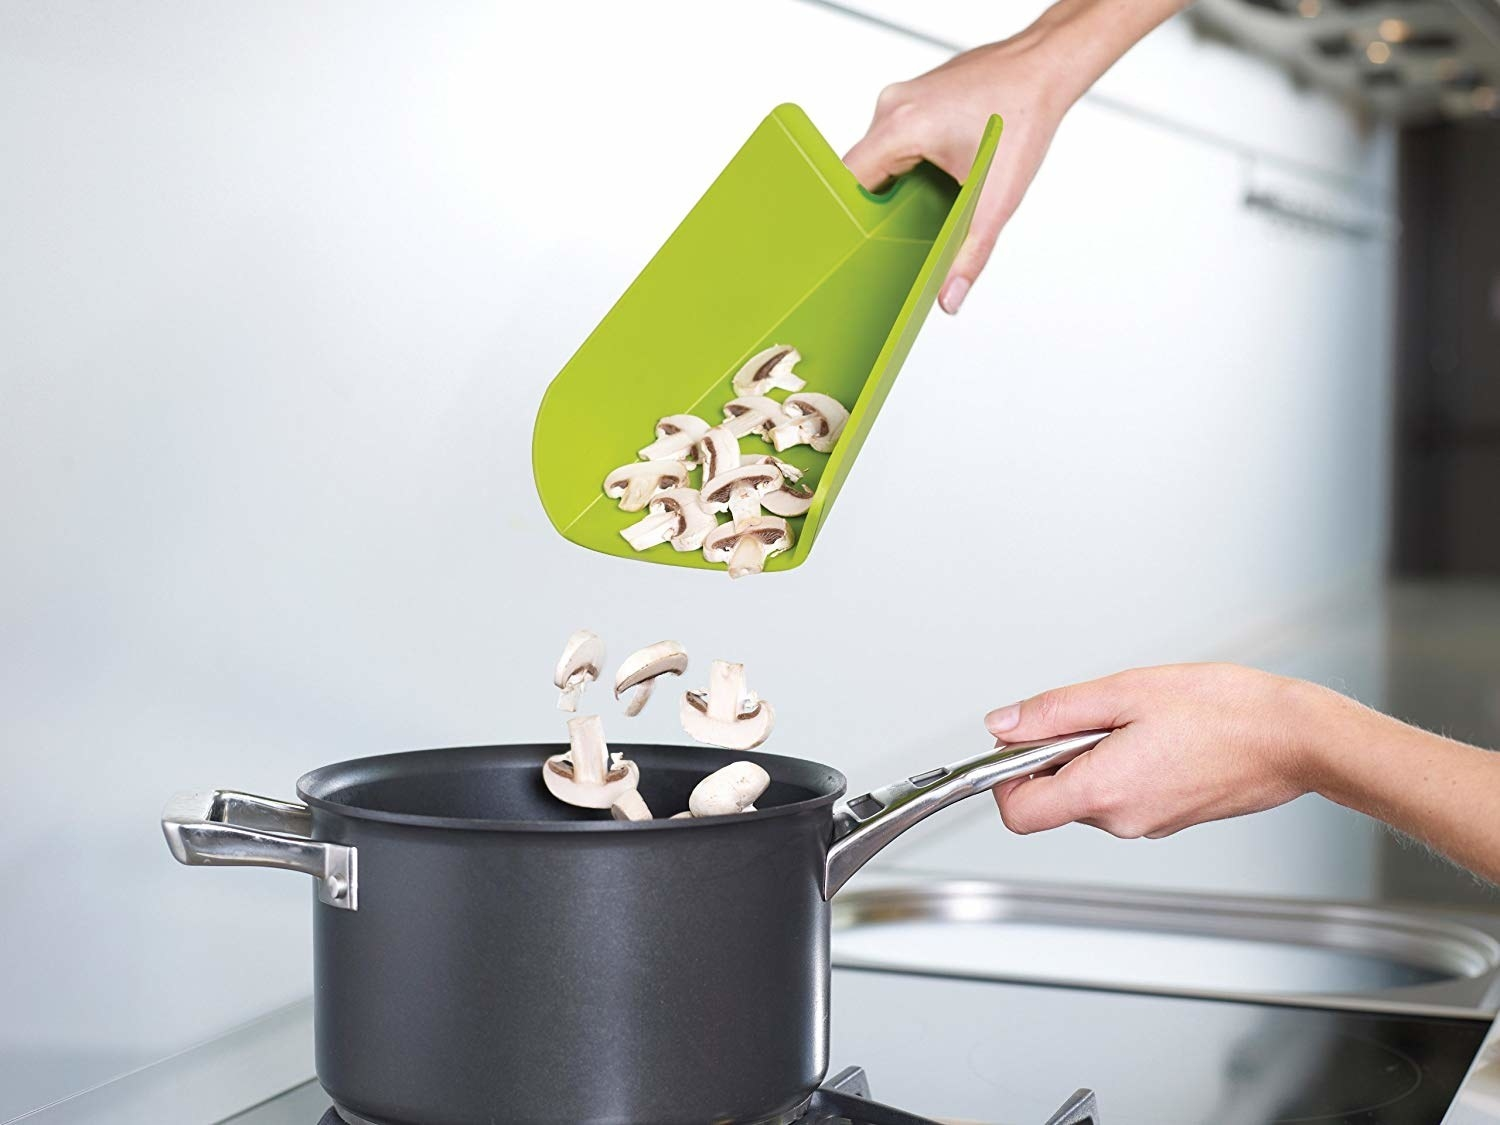 Tri-folded cutting board spilling mushrooms into pot on stovetop